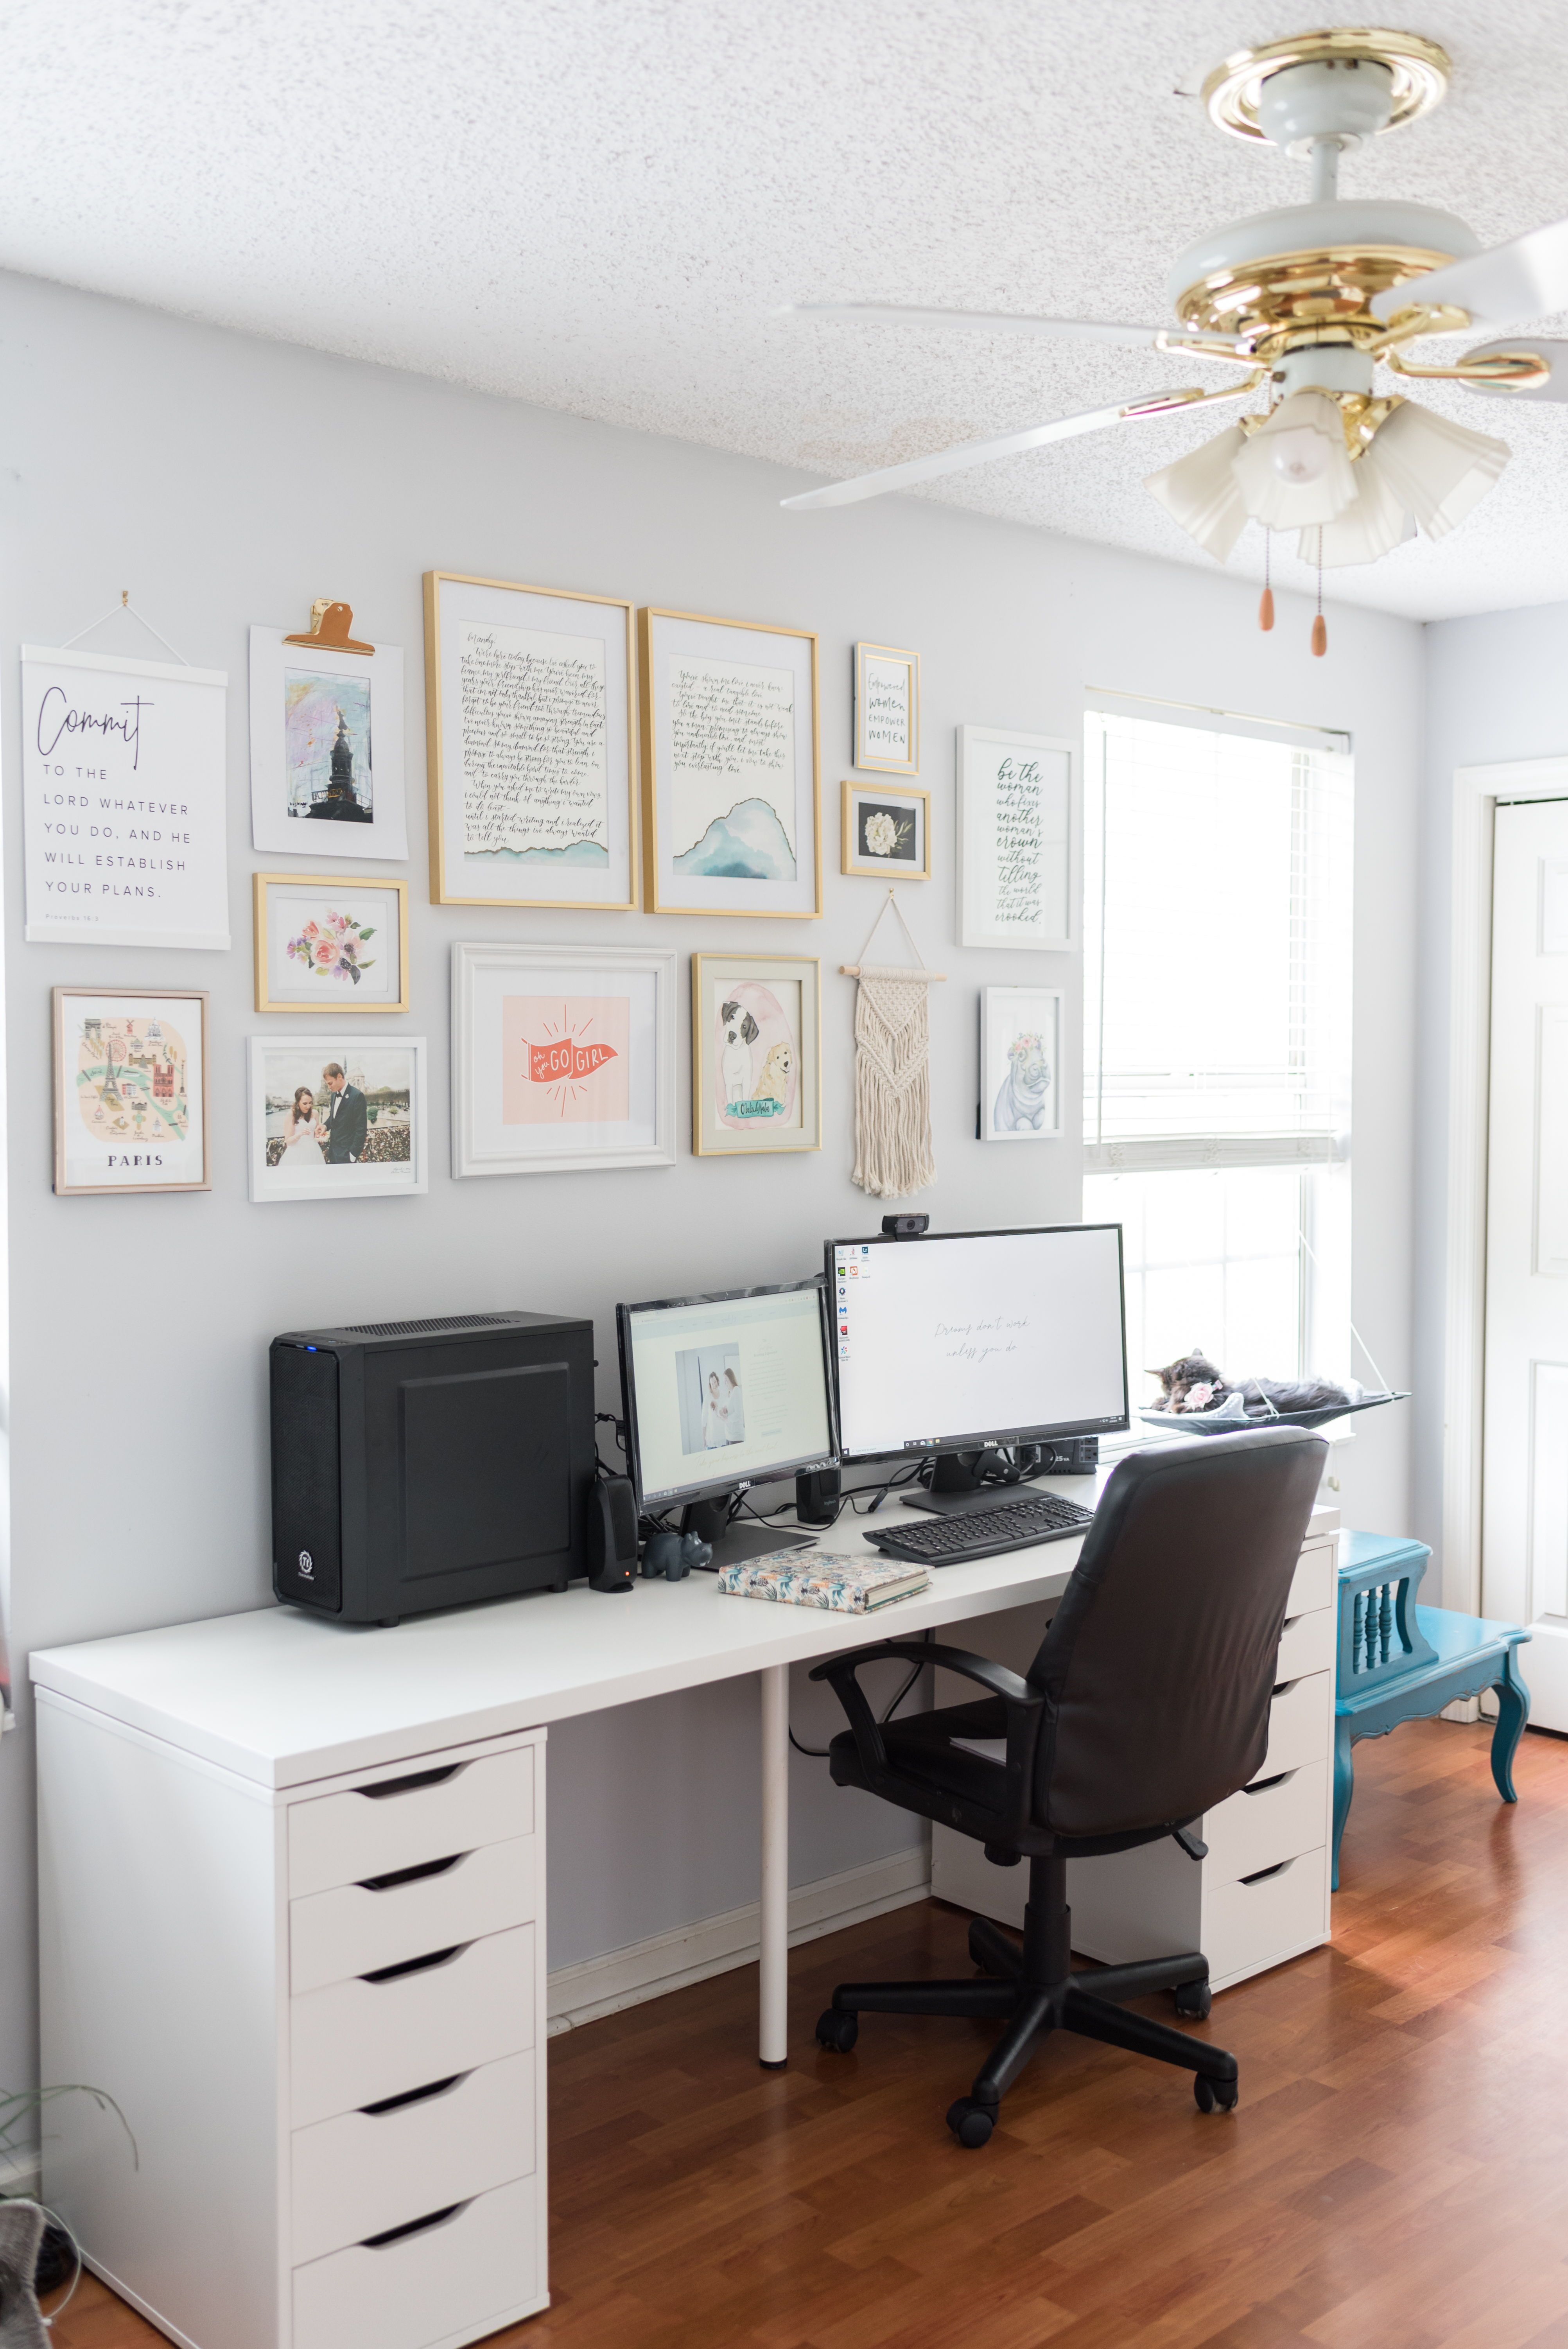 Work From Home Office Ideas For Women White Ikea Desk And Colorful Gallery Wall Inspiration In 2020 Ikea White Desk White Office Desk Ikea Ikea Desk